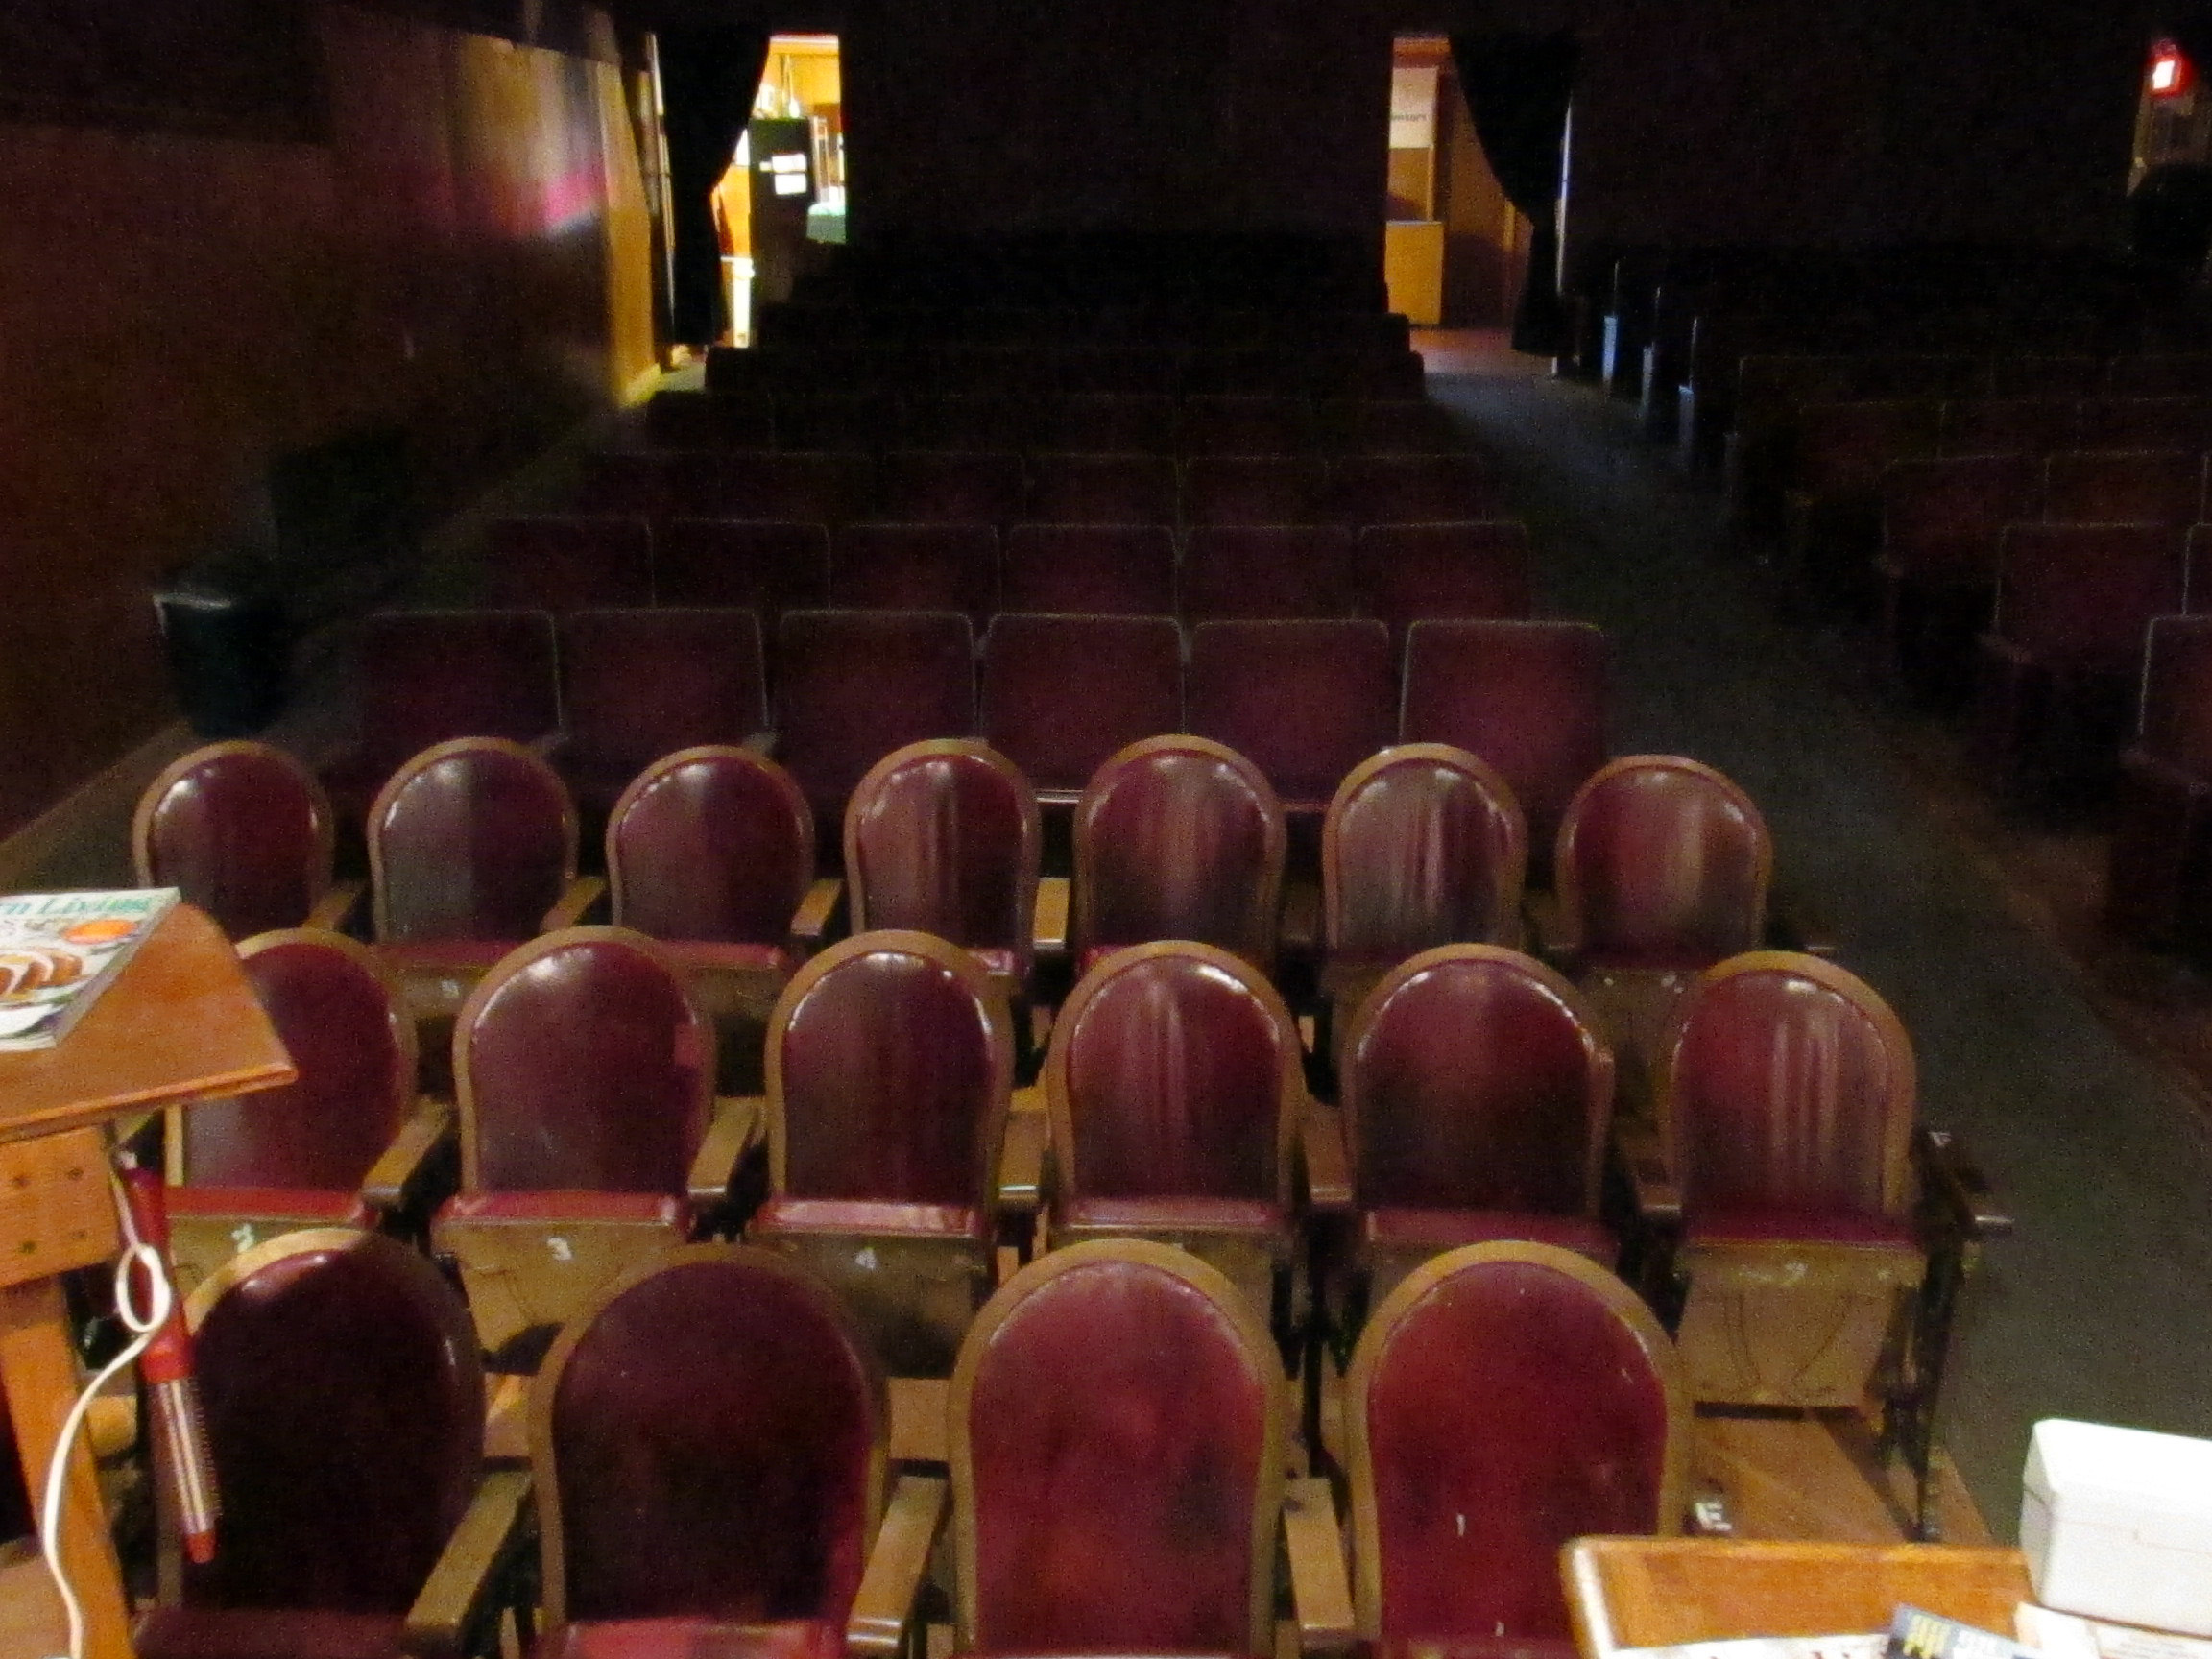 Old Theater Chairs - Historic Jones Theater, Westcliffe, Colorado